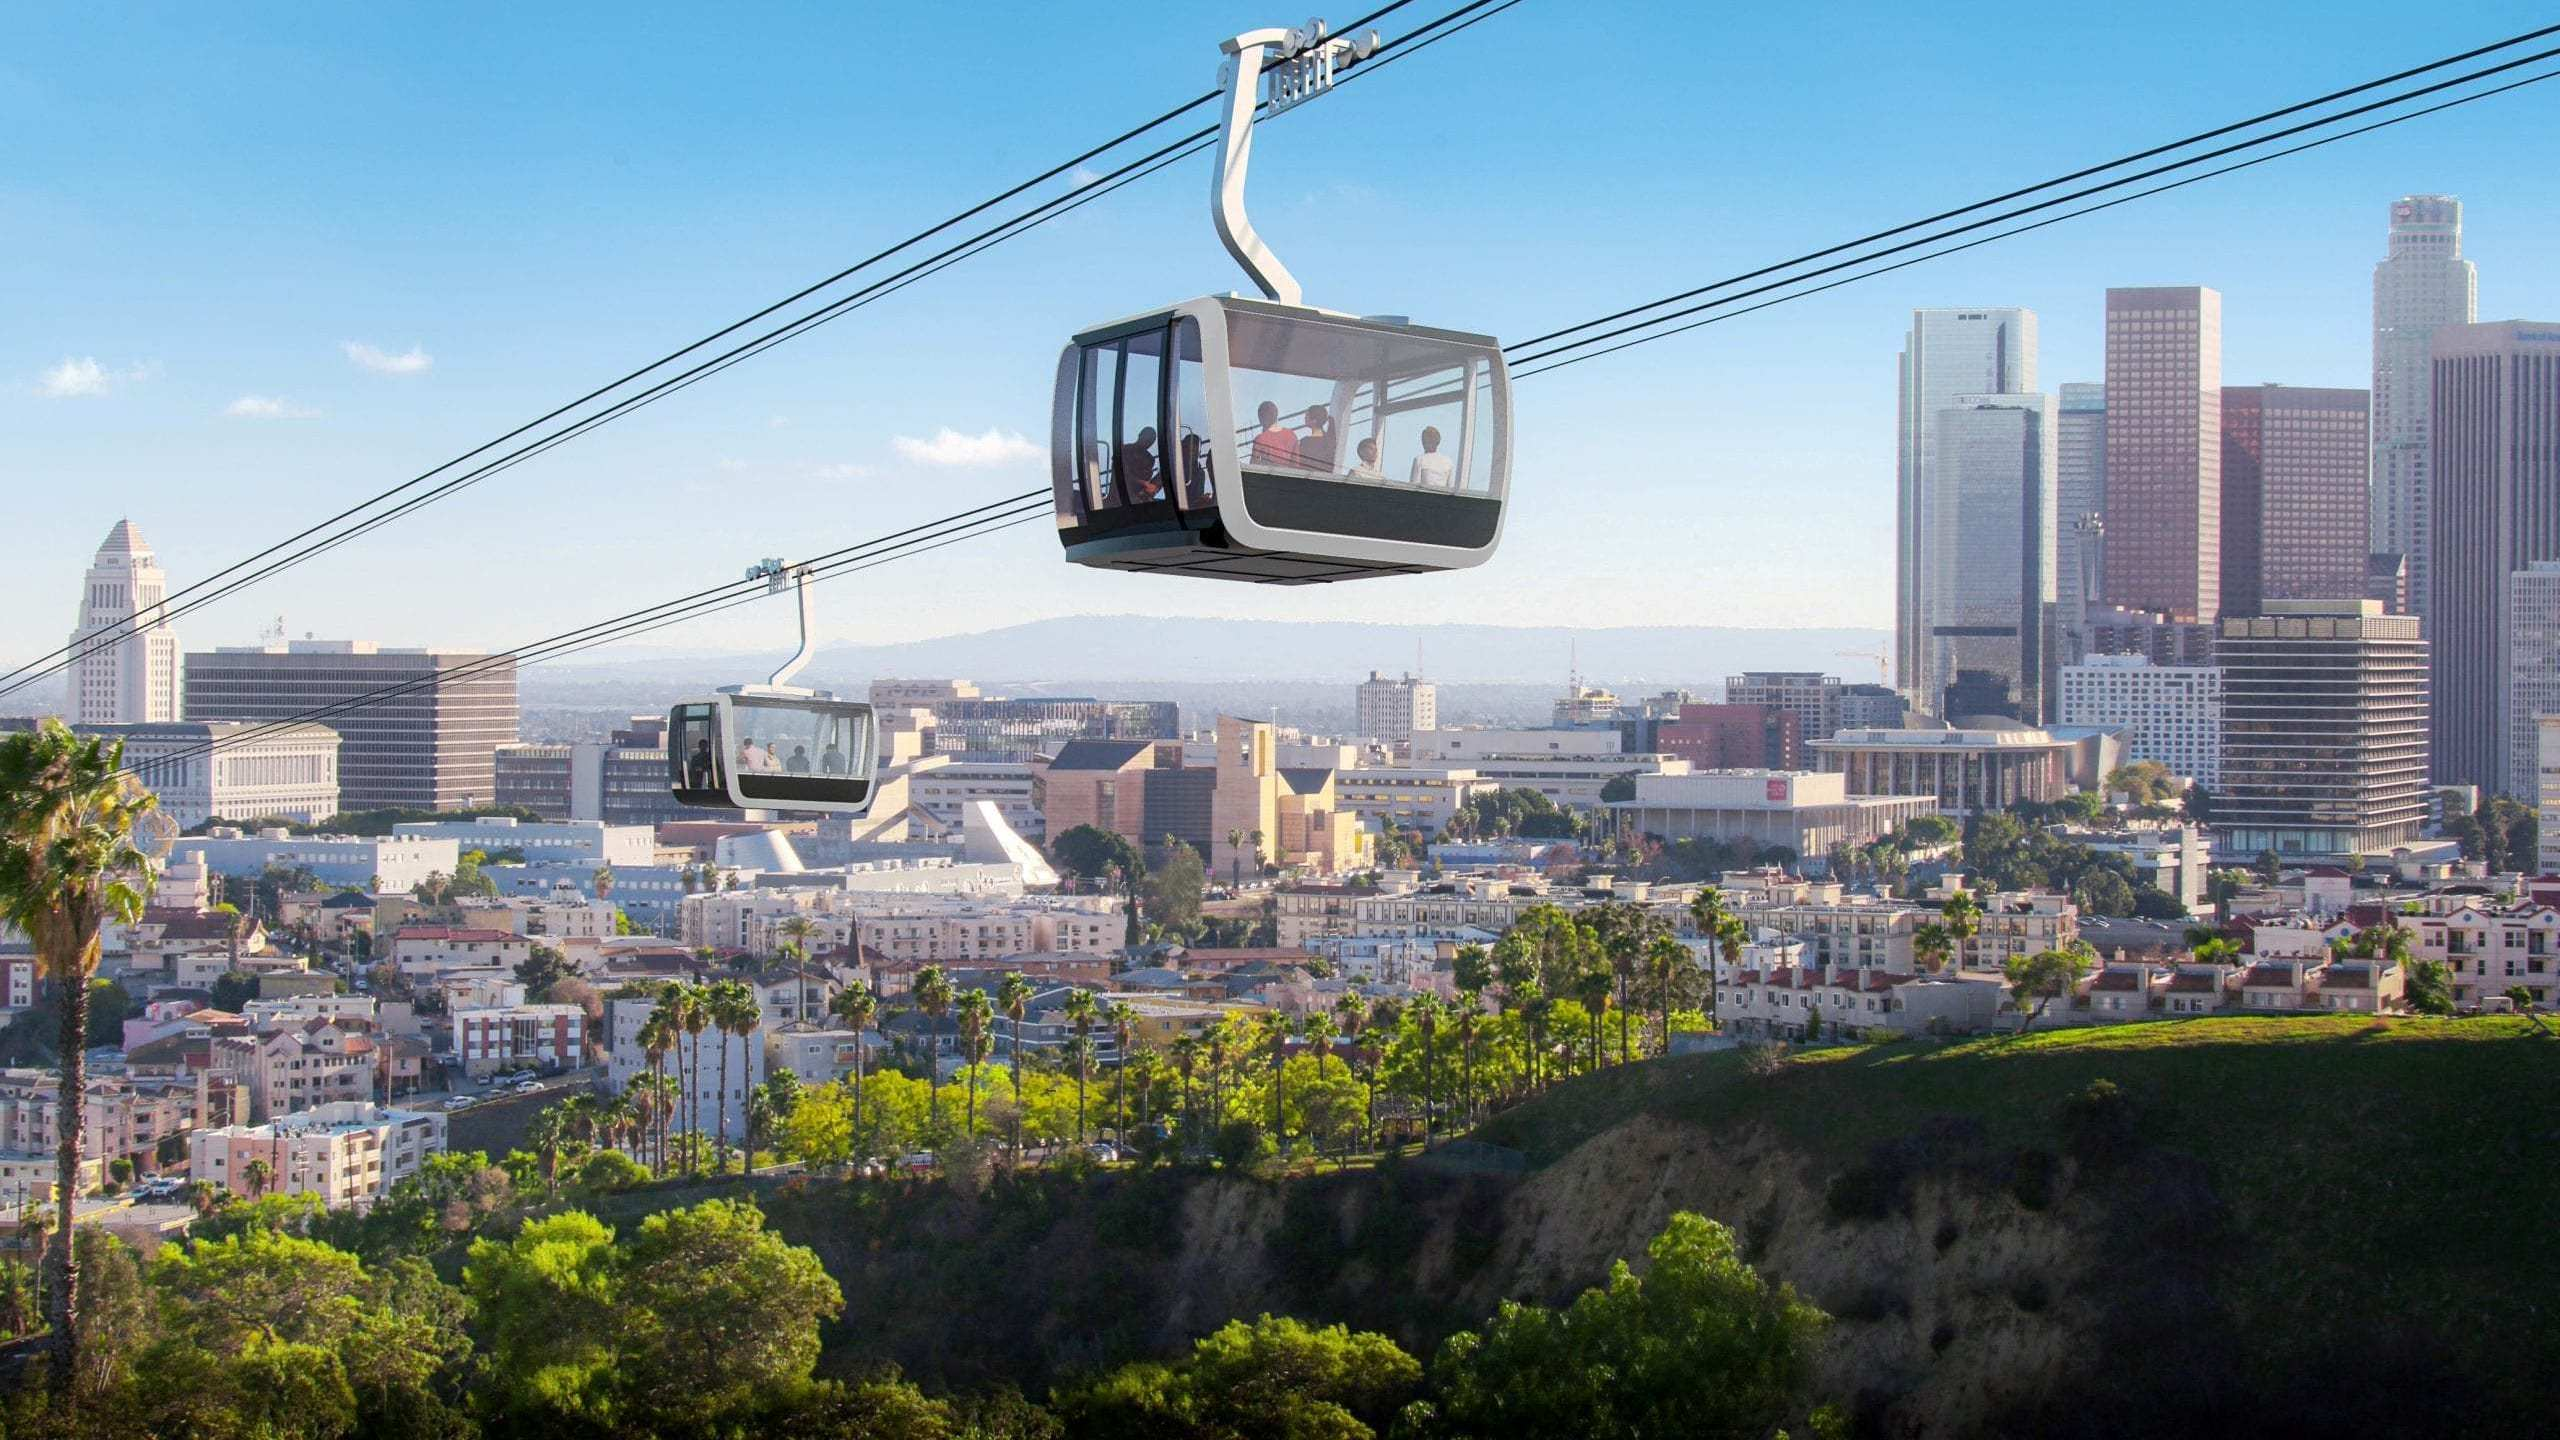 The proposed aerial rapid transit gondola system from Union Station to Dodgers Stadium is seen in a mockup provided by Metro.